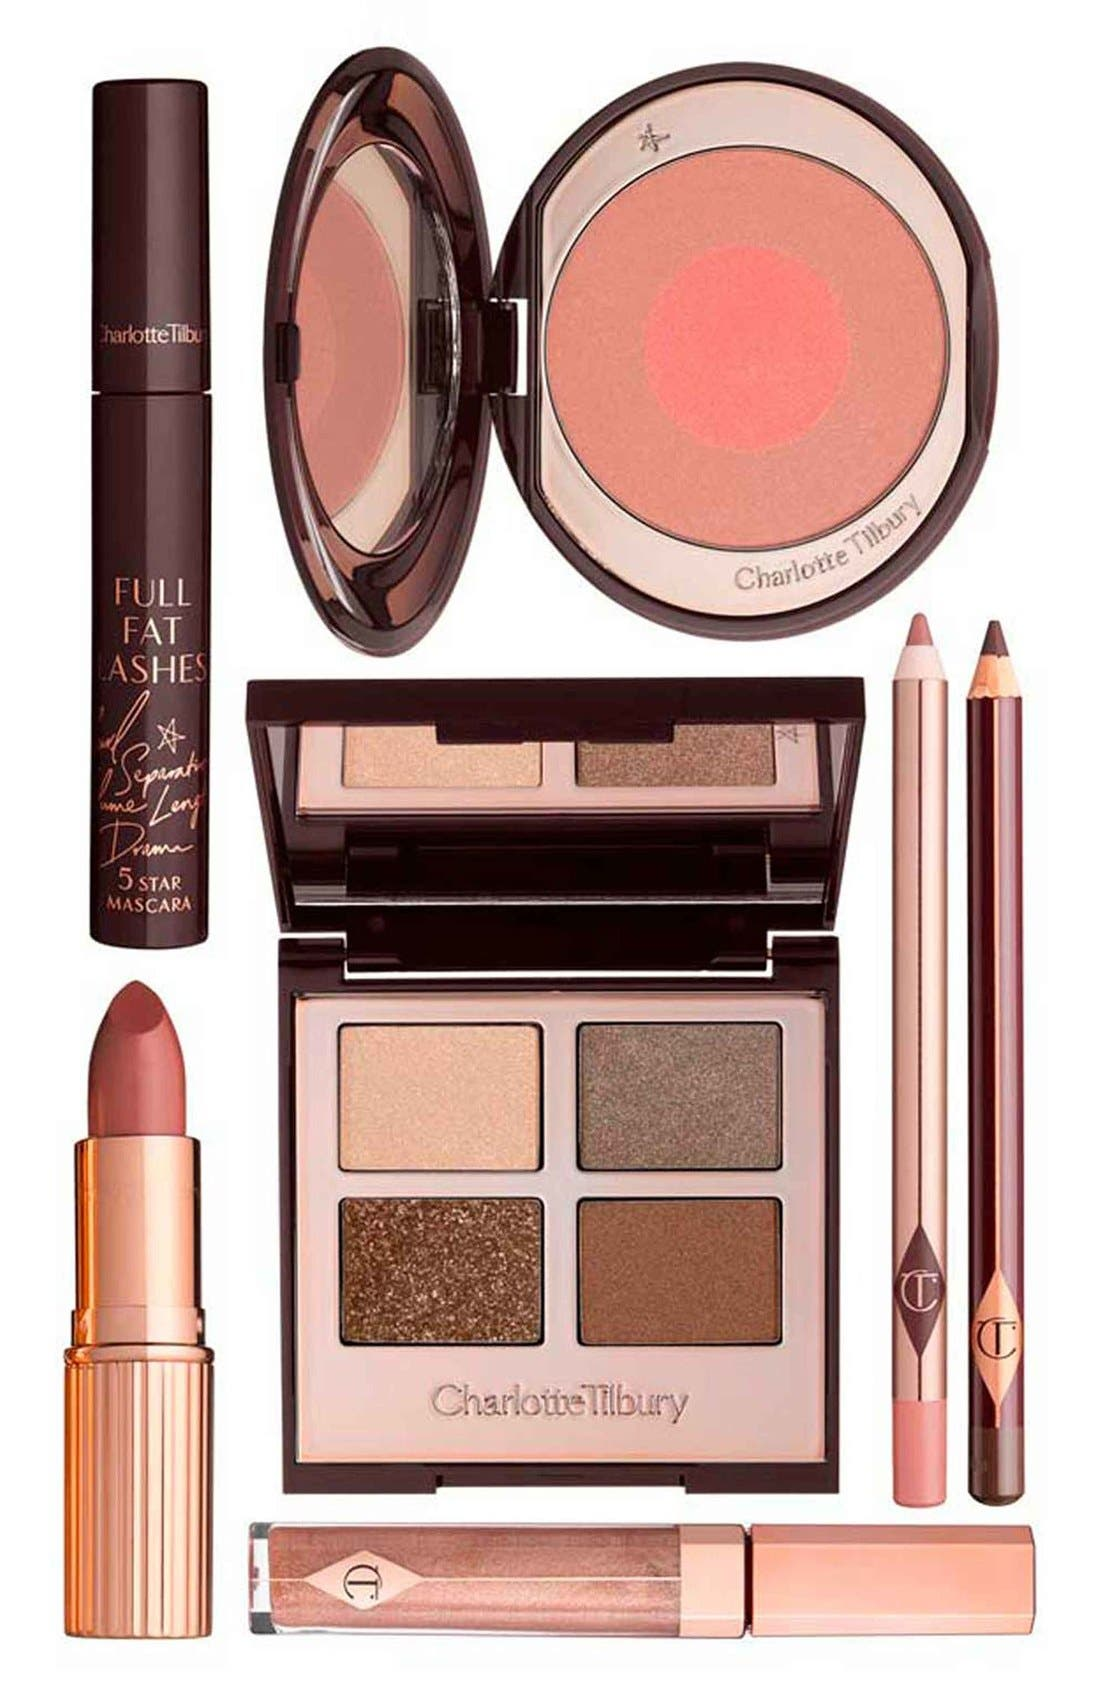 Charlotte Tilbury 'The Golden Goddess' Set ($239 Value)